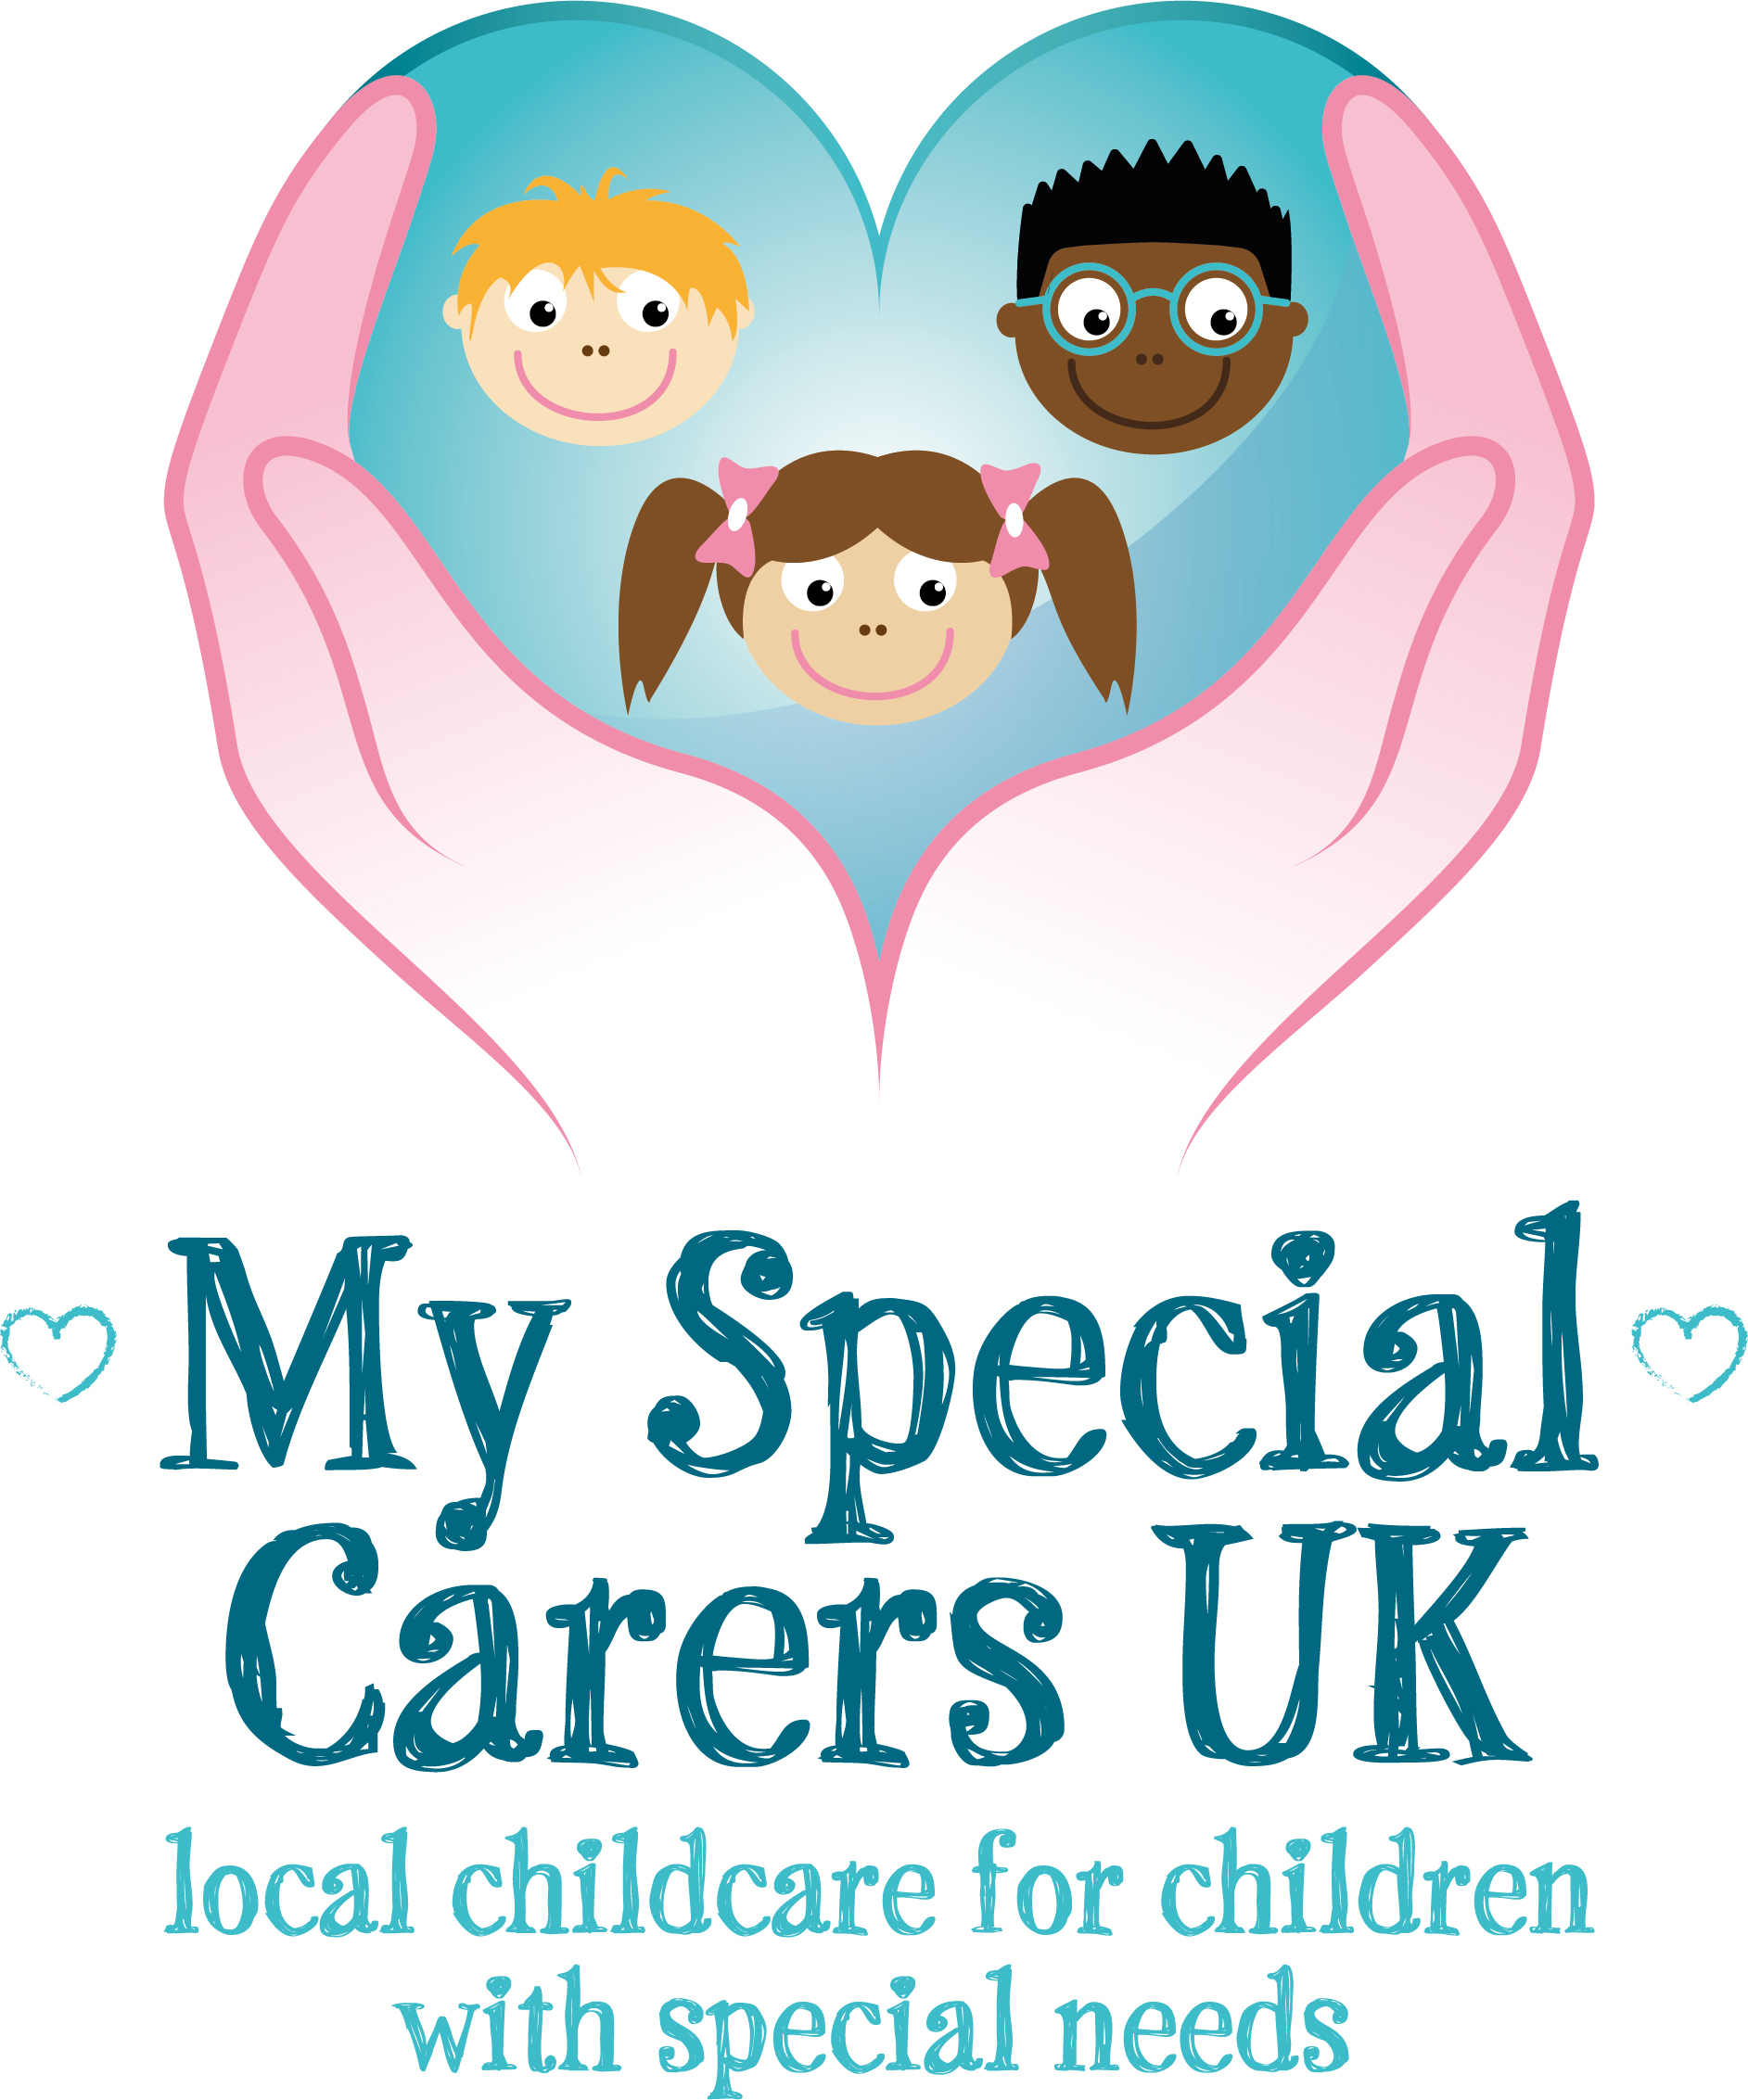 My Special Carers UK